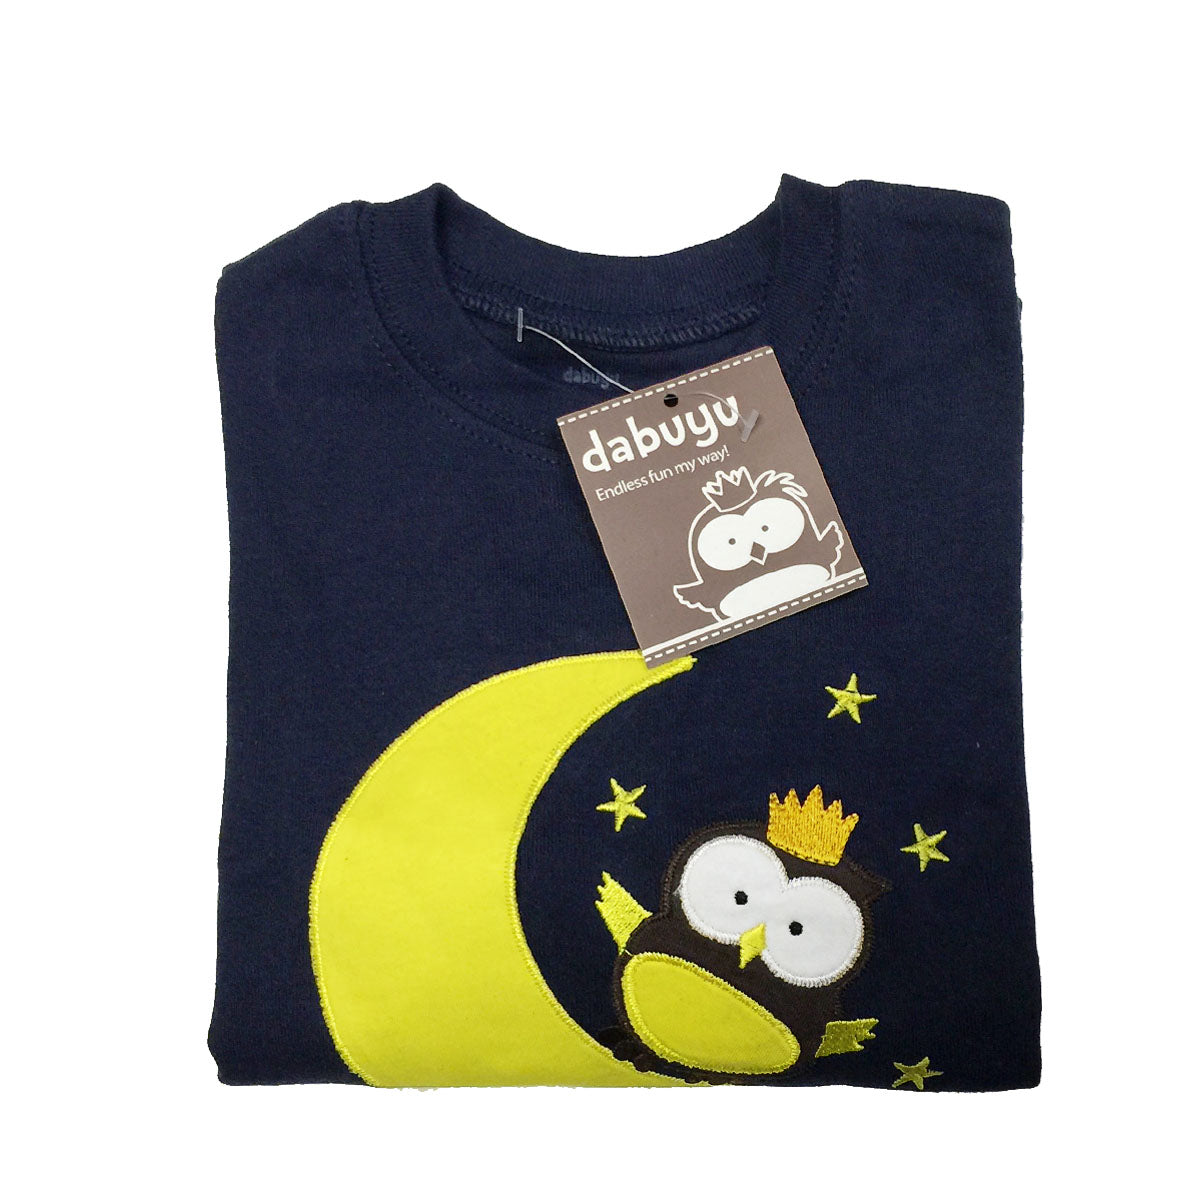 Dabuyu Moon & Owl Children's Pajamas